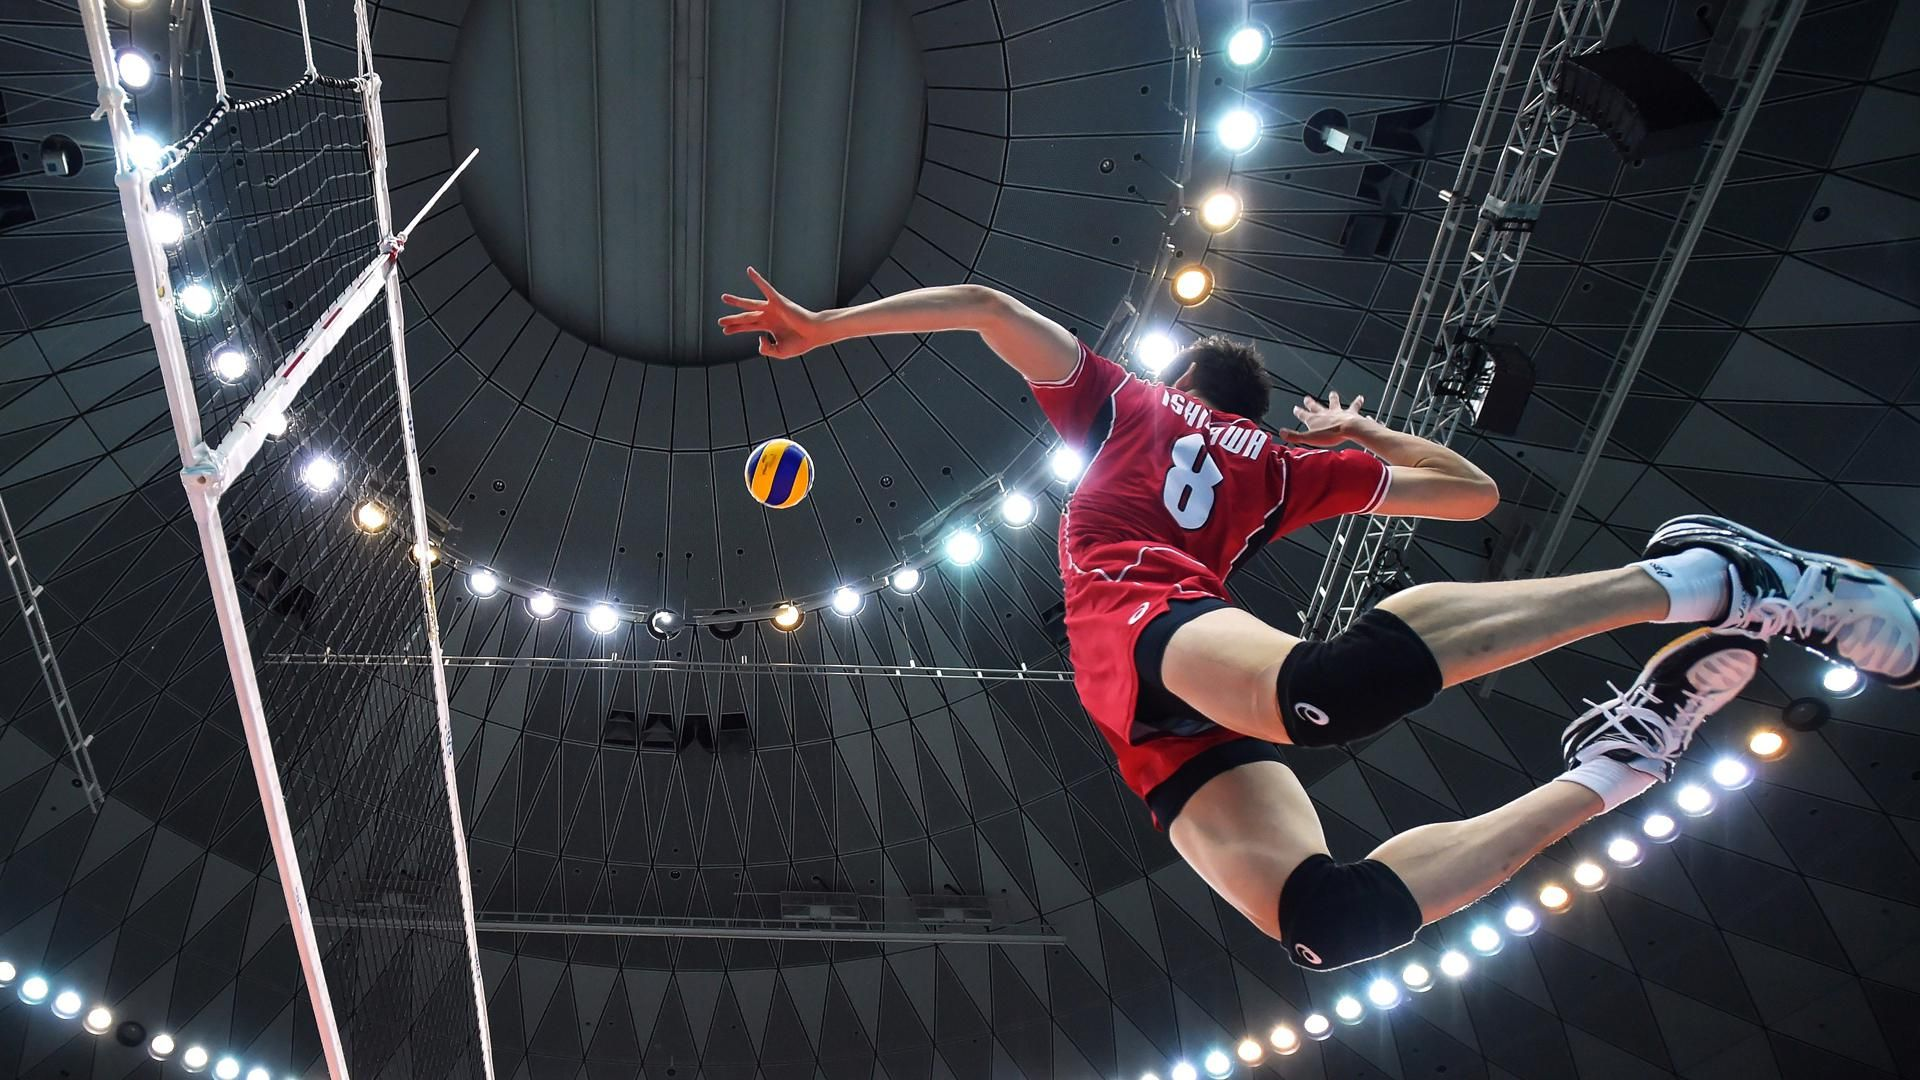 Men S Volleyball Wallpapers For Android Desktop Wallpaper Box Volleyball Wallpaper Mens Volleyball Volleyball Poses